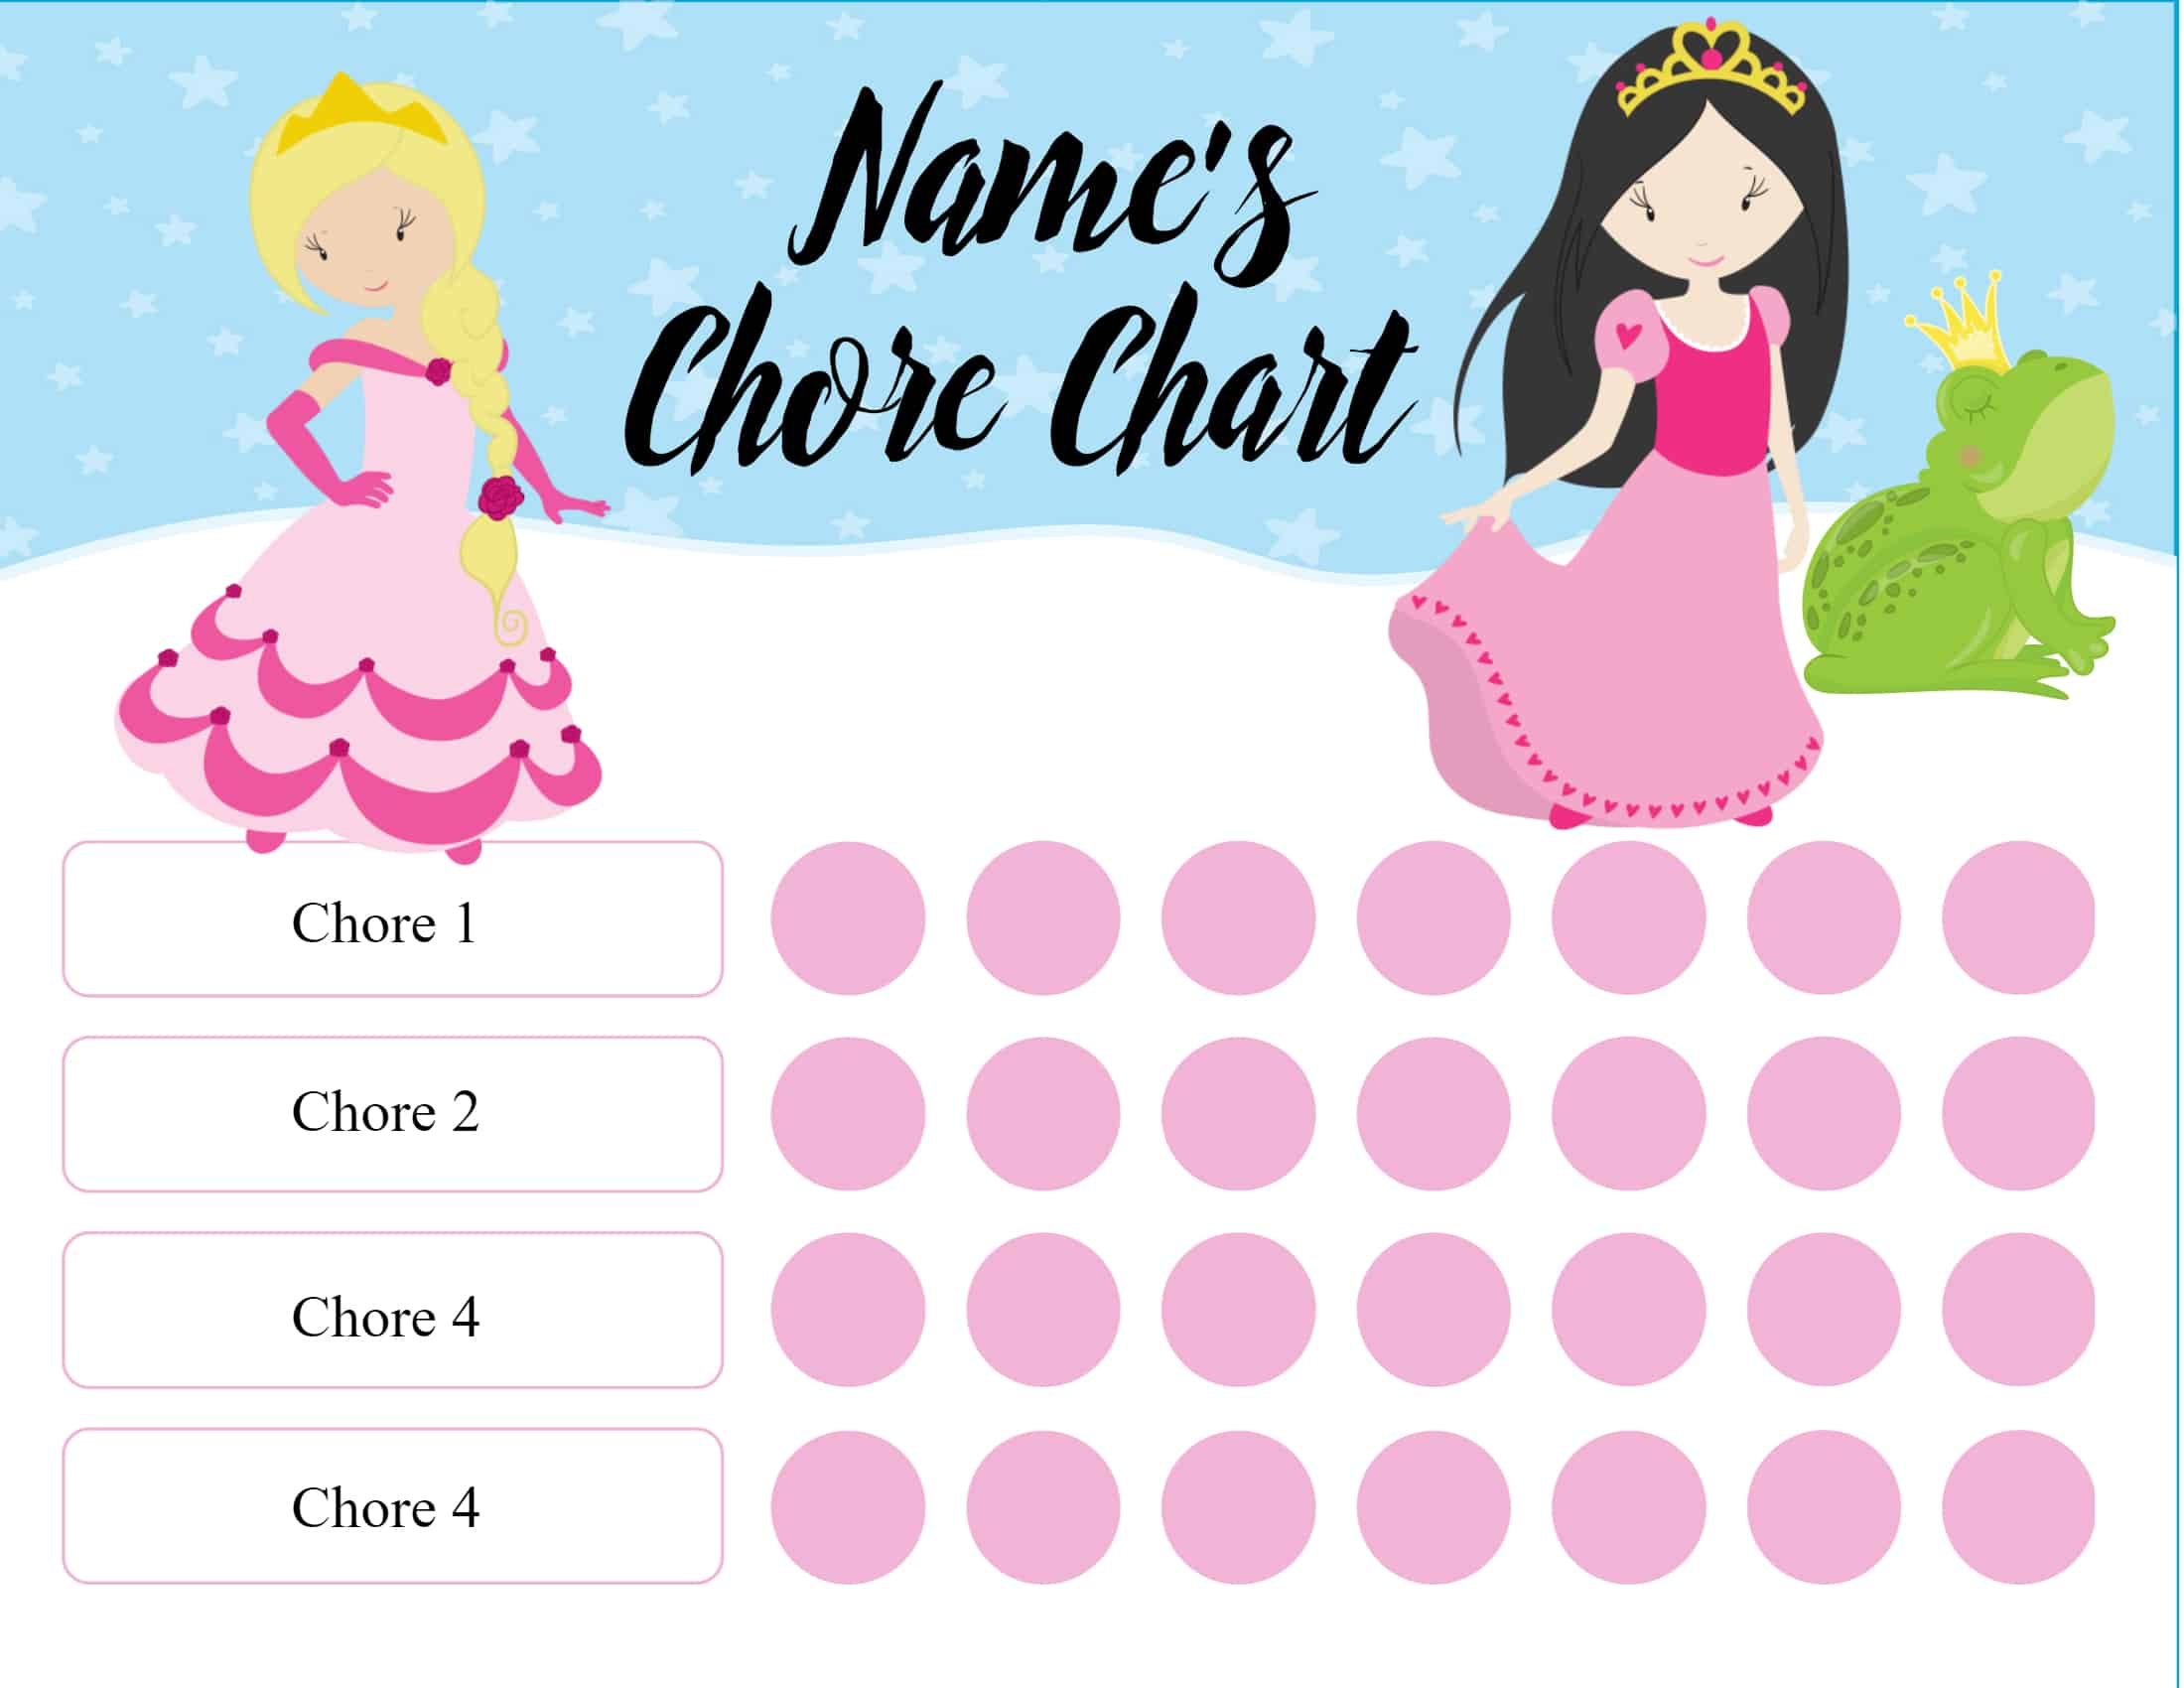 photograph about Free Printable House Rules Chart named Totally free Printable Chore Chart for Children Personalize On-line